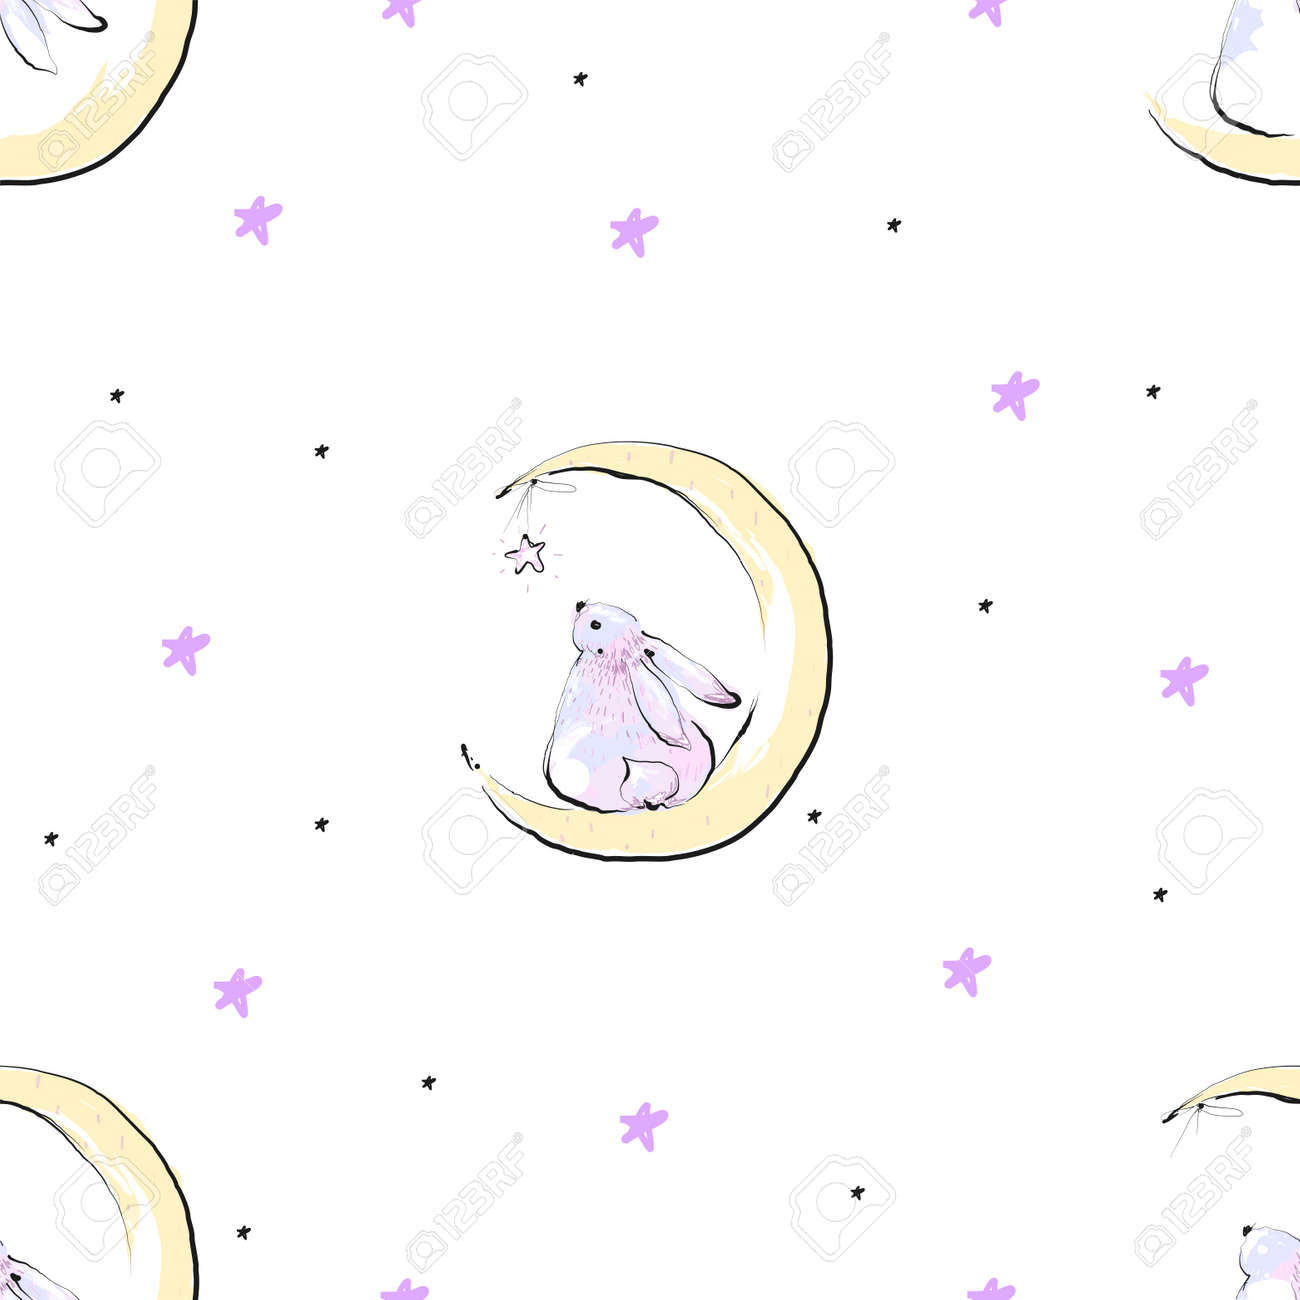 Seamless pattern with stars and cute bunny on the Moon - 171024850